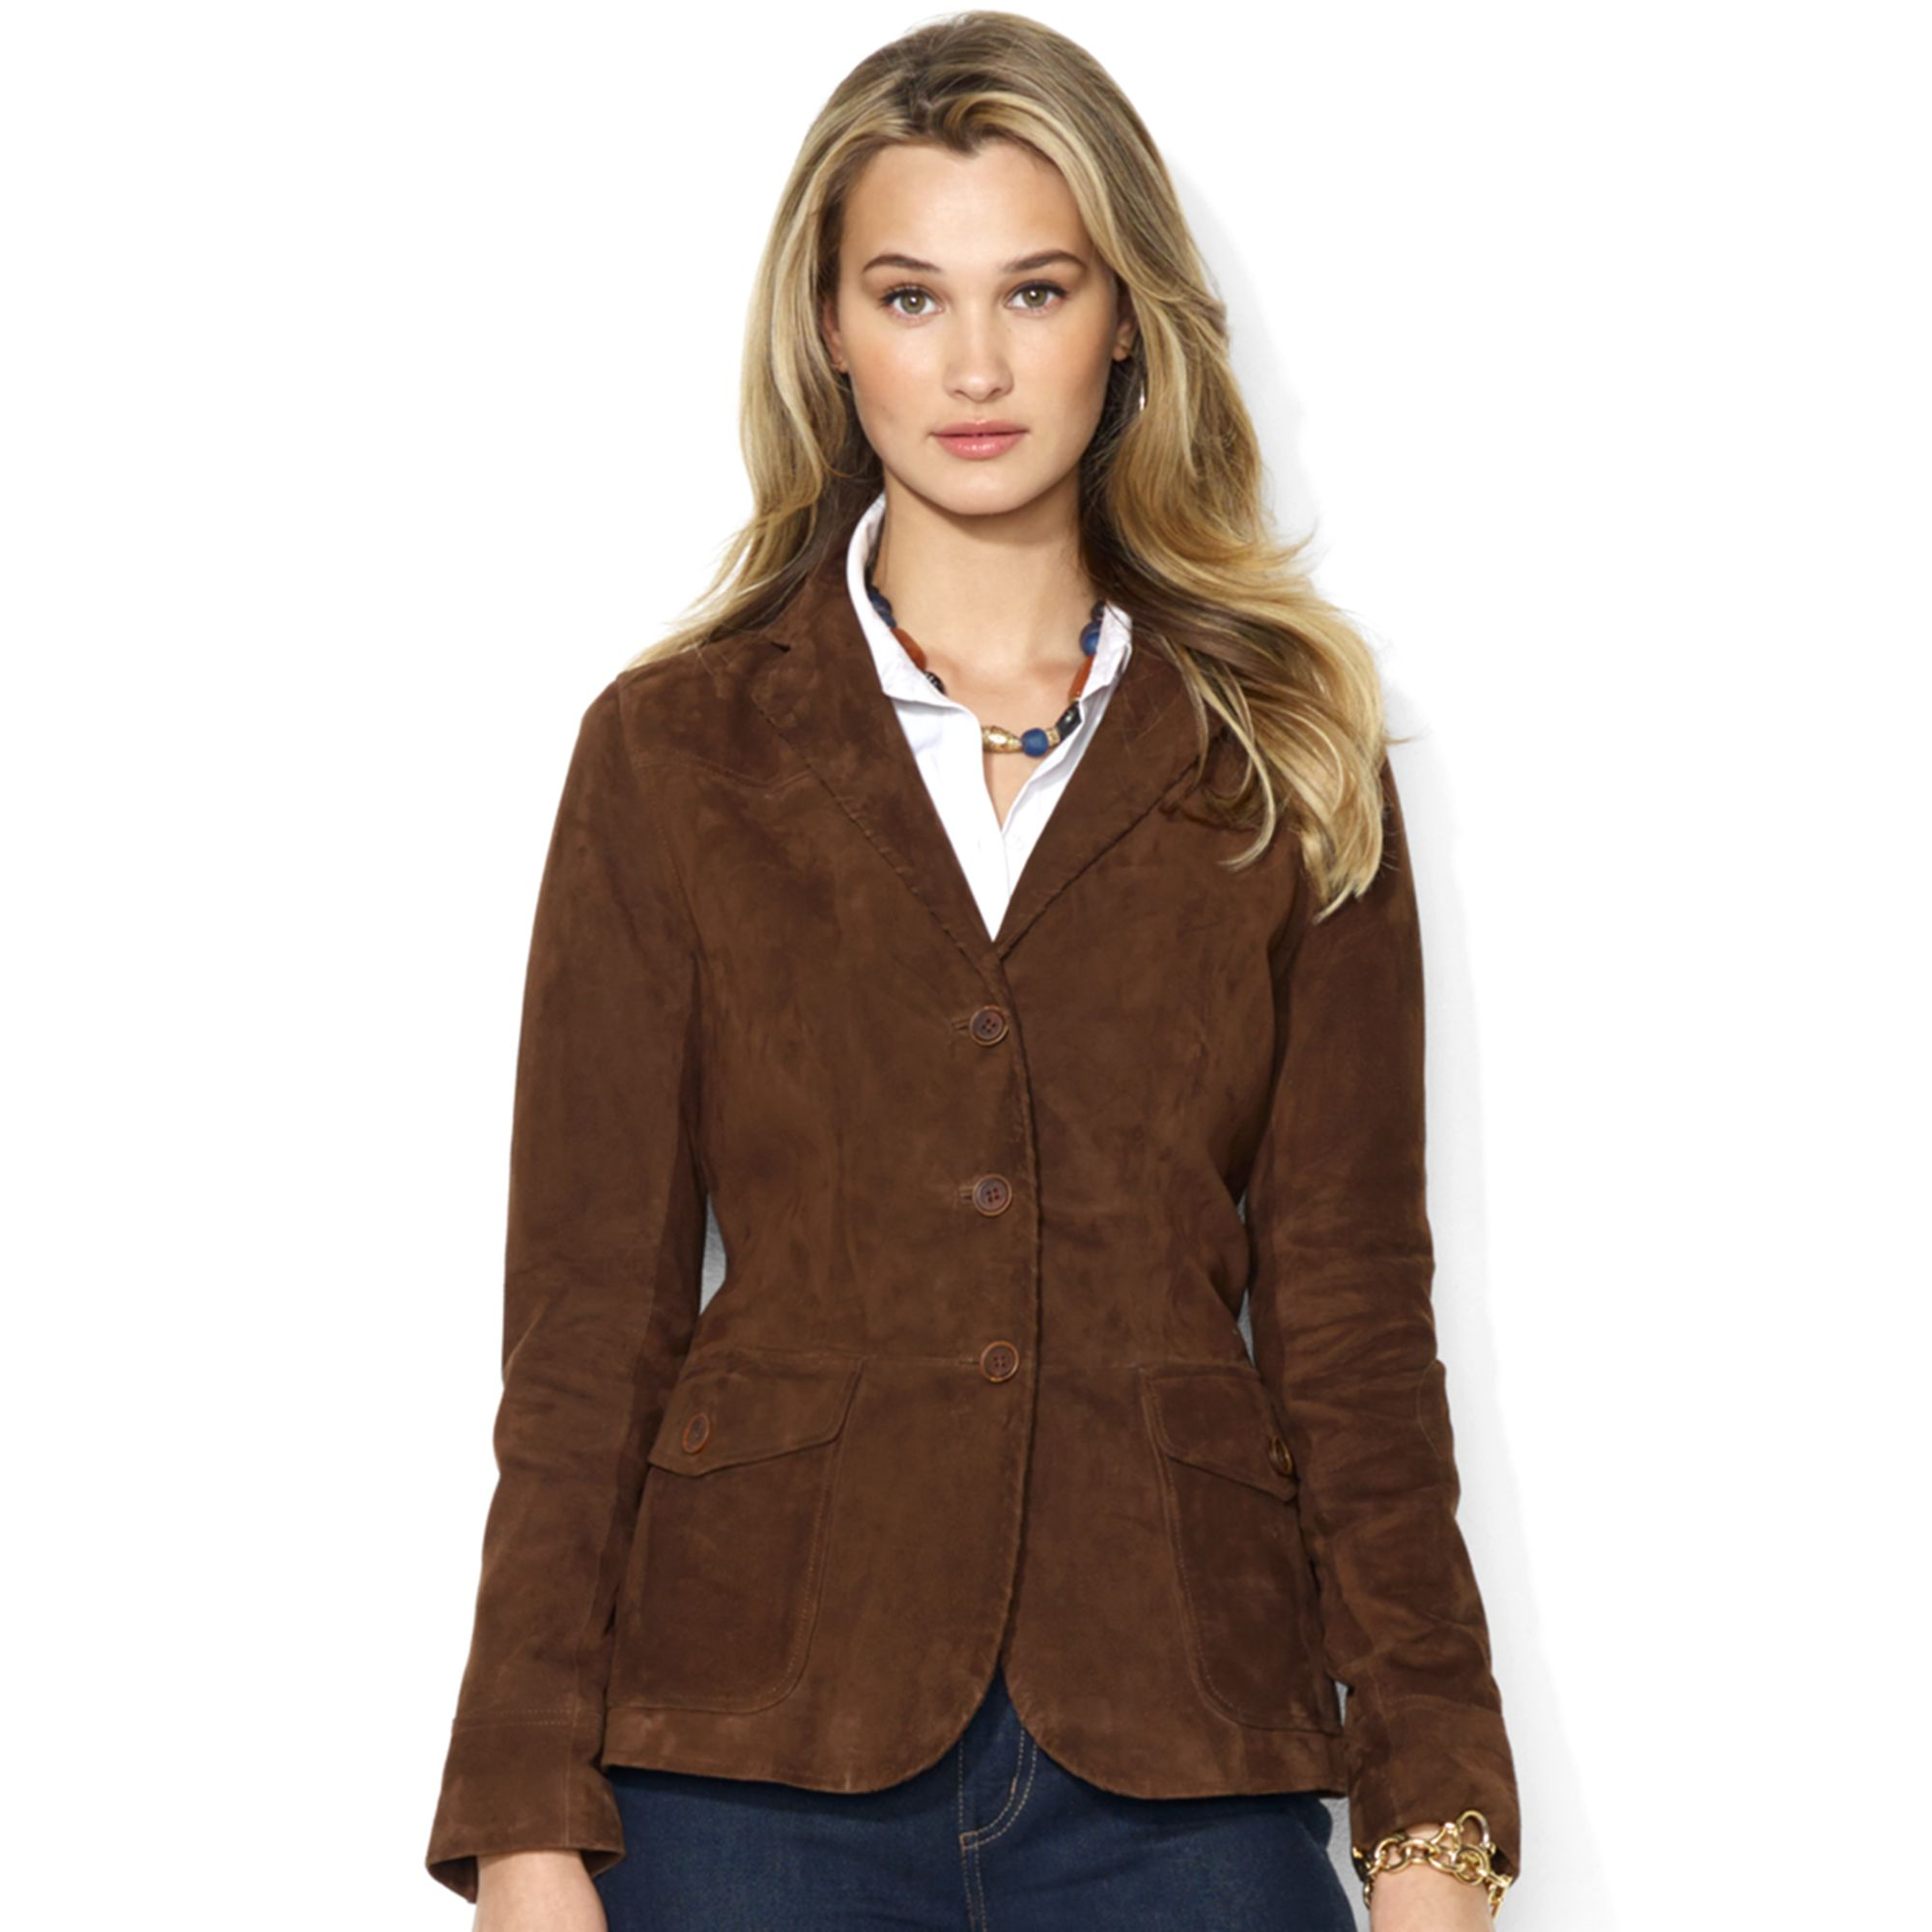 Lauren by ralph lauren Lauren Jeans Co Jacket Suede Blazer in ...